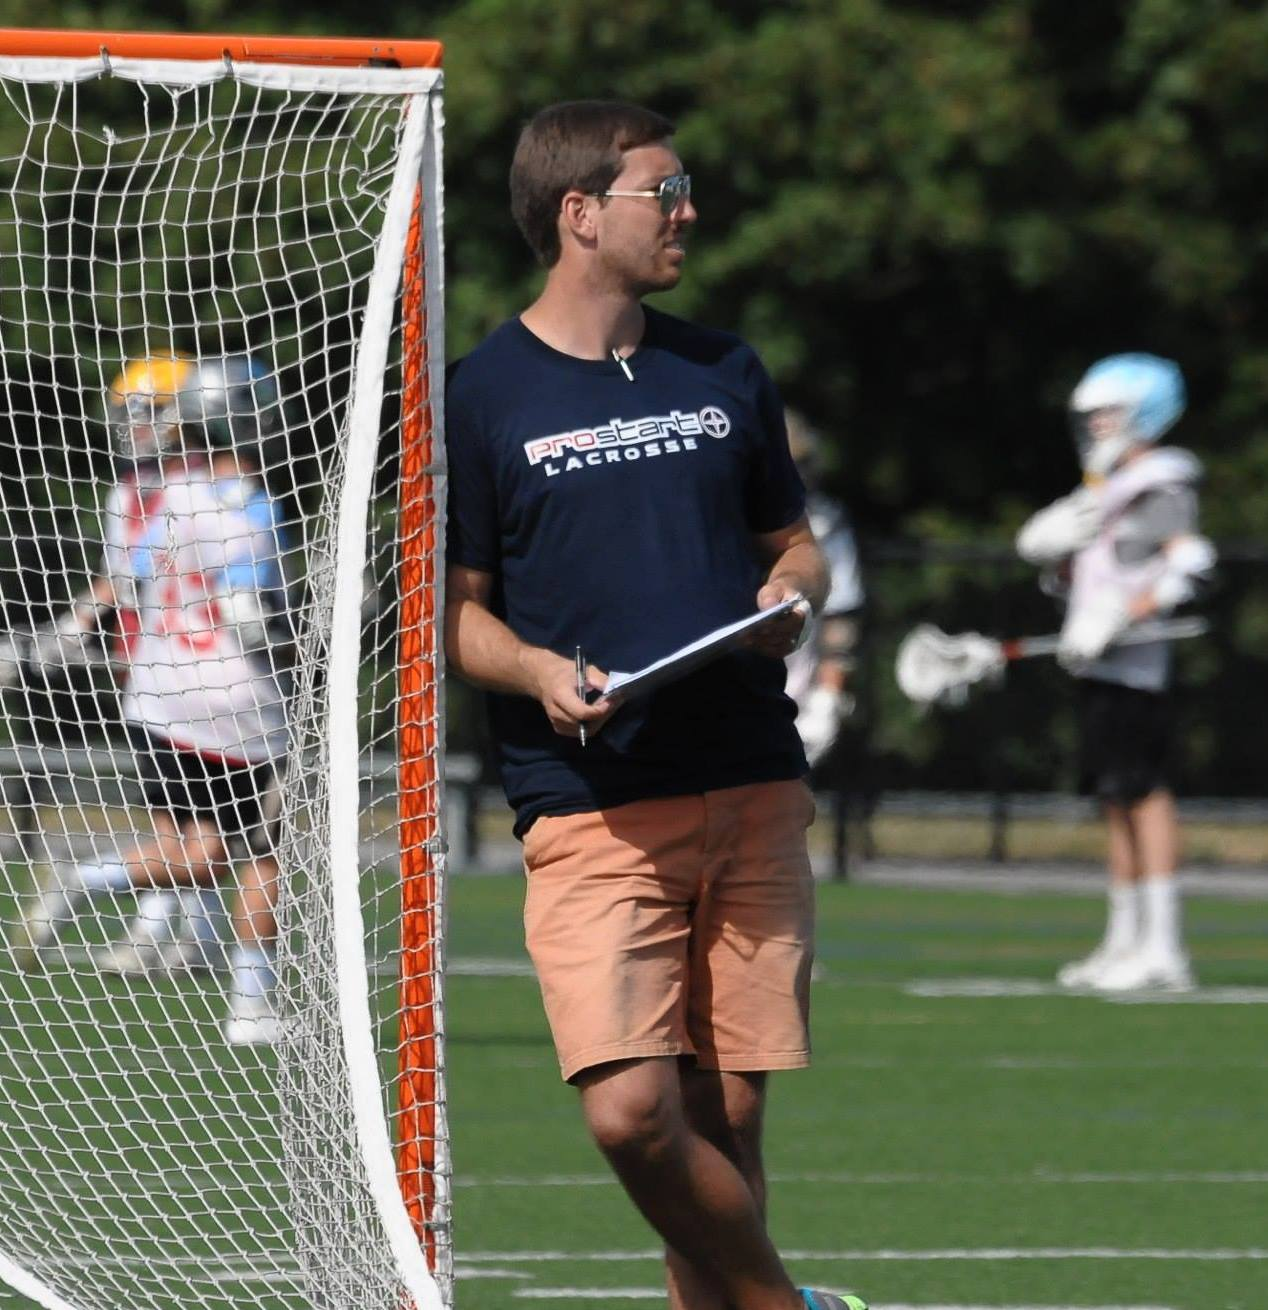 Hungary Lacrosse Head Coach, Brad Jones